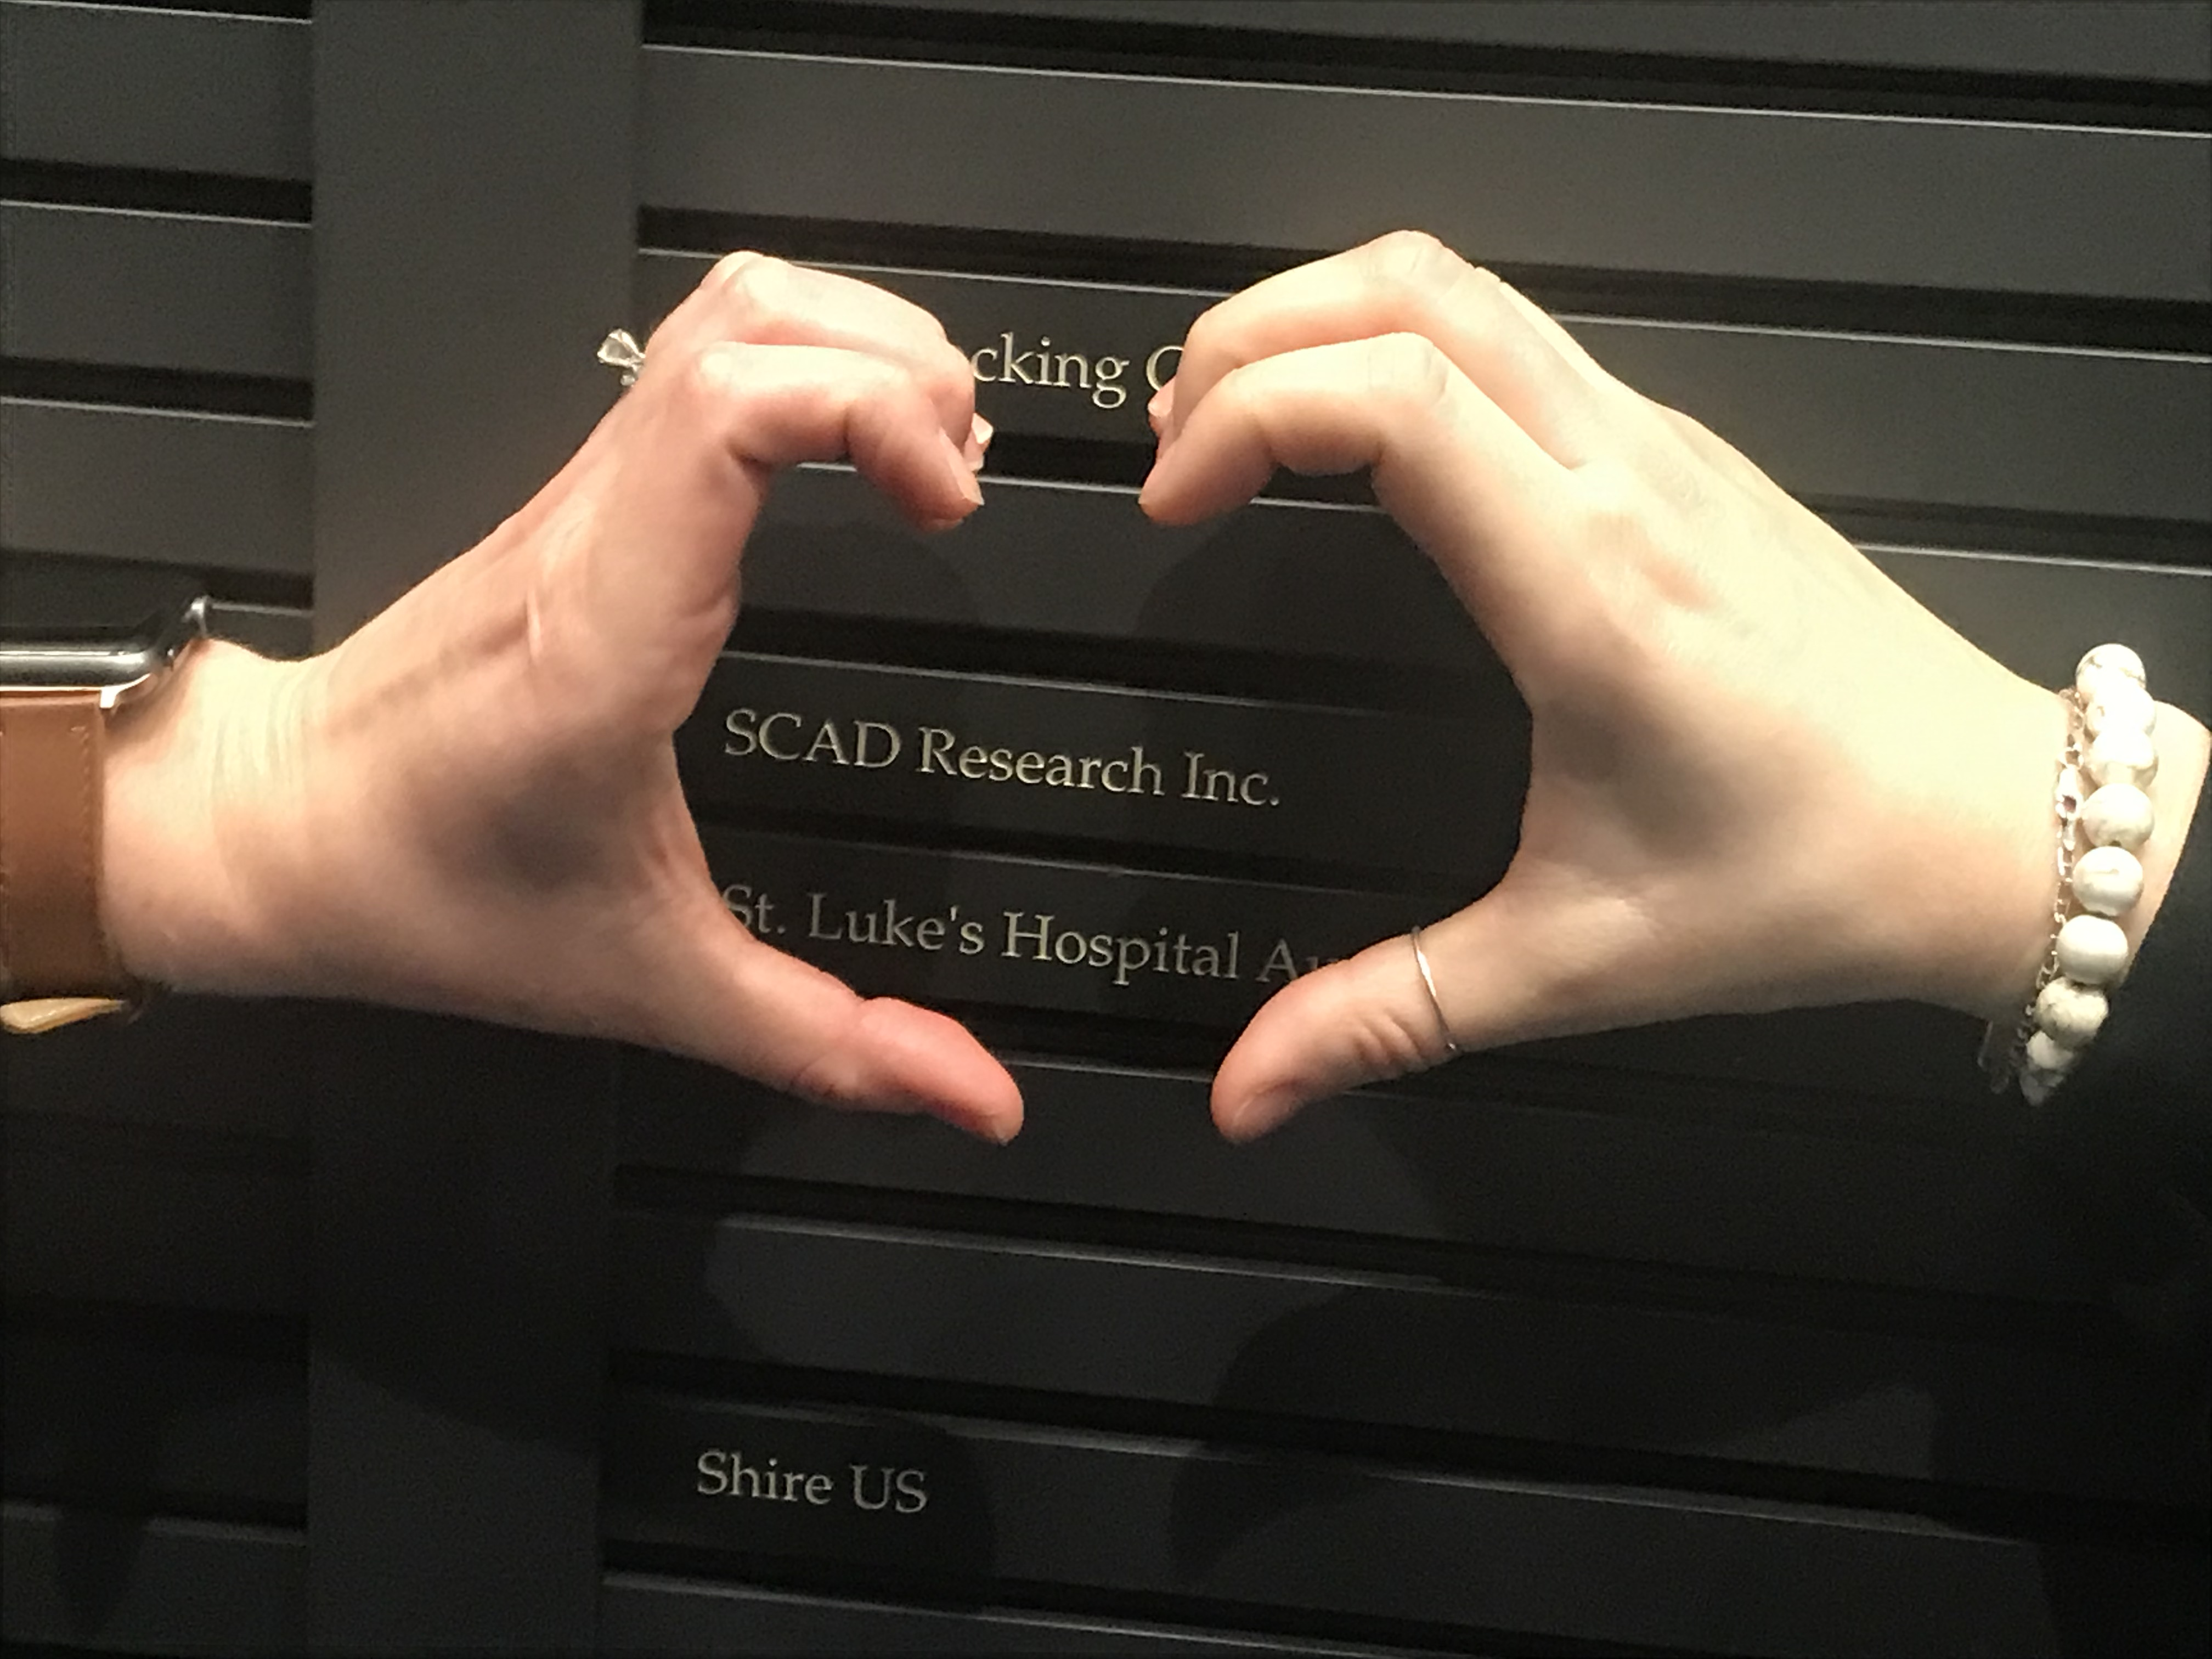 SCAD Research Inc